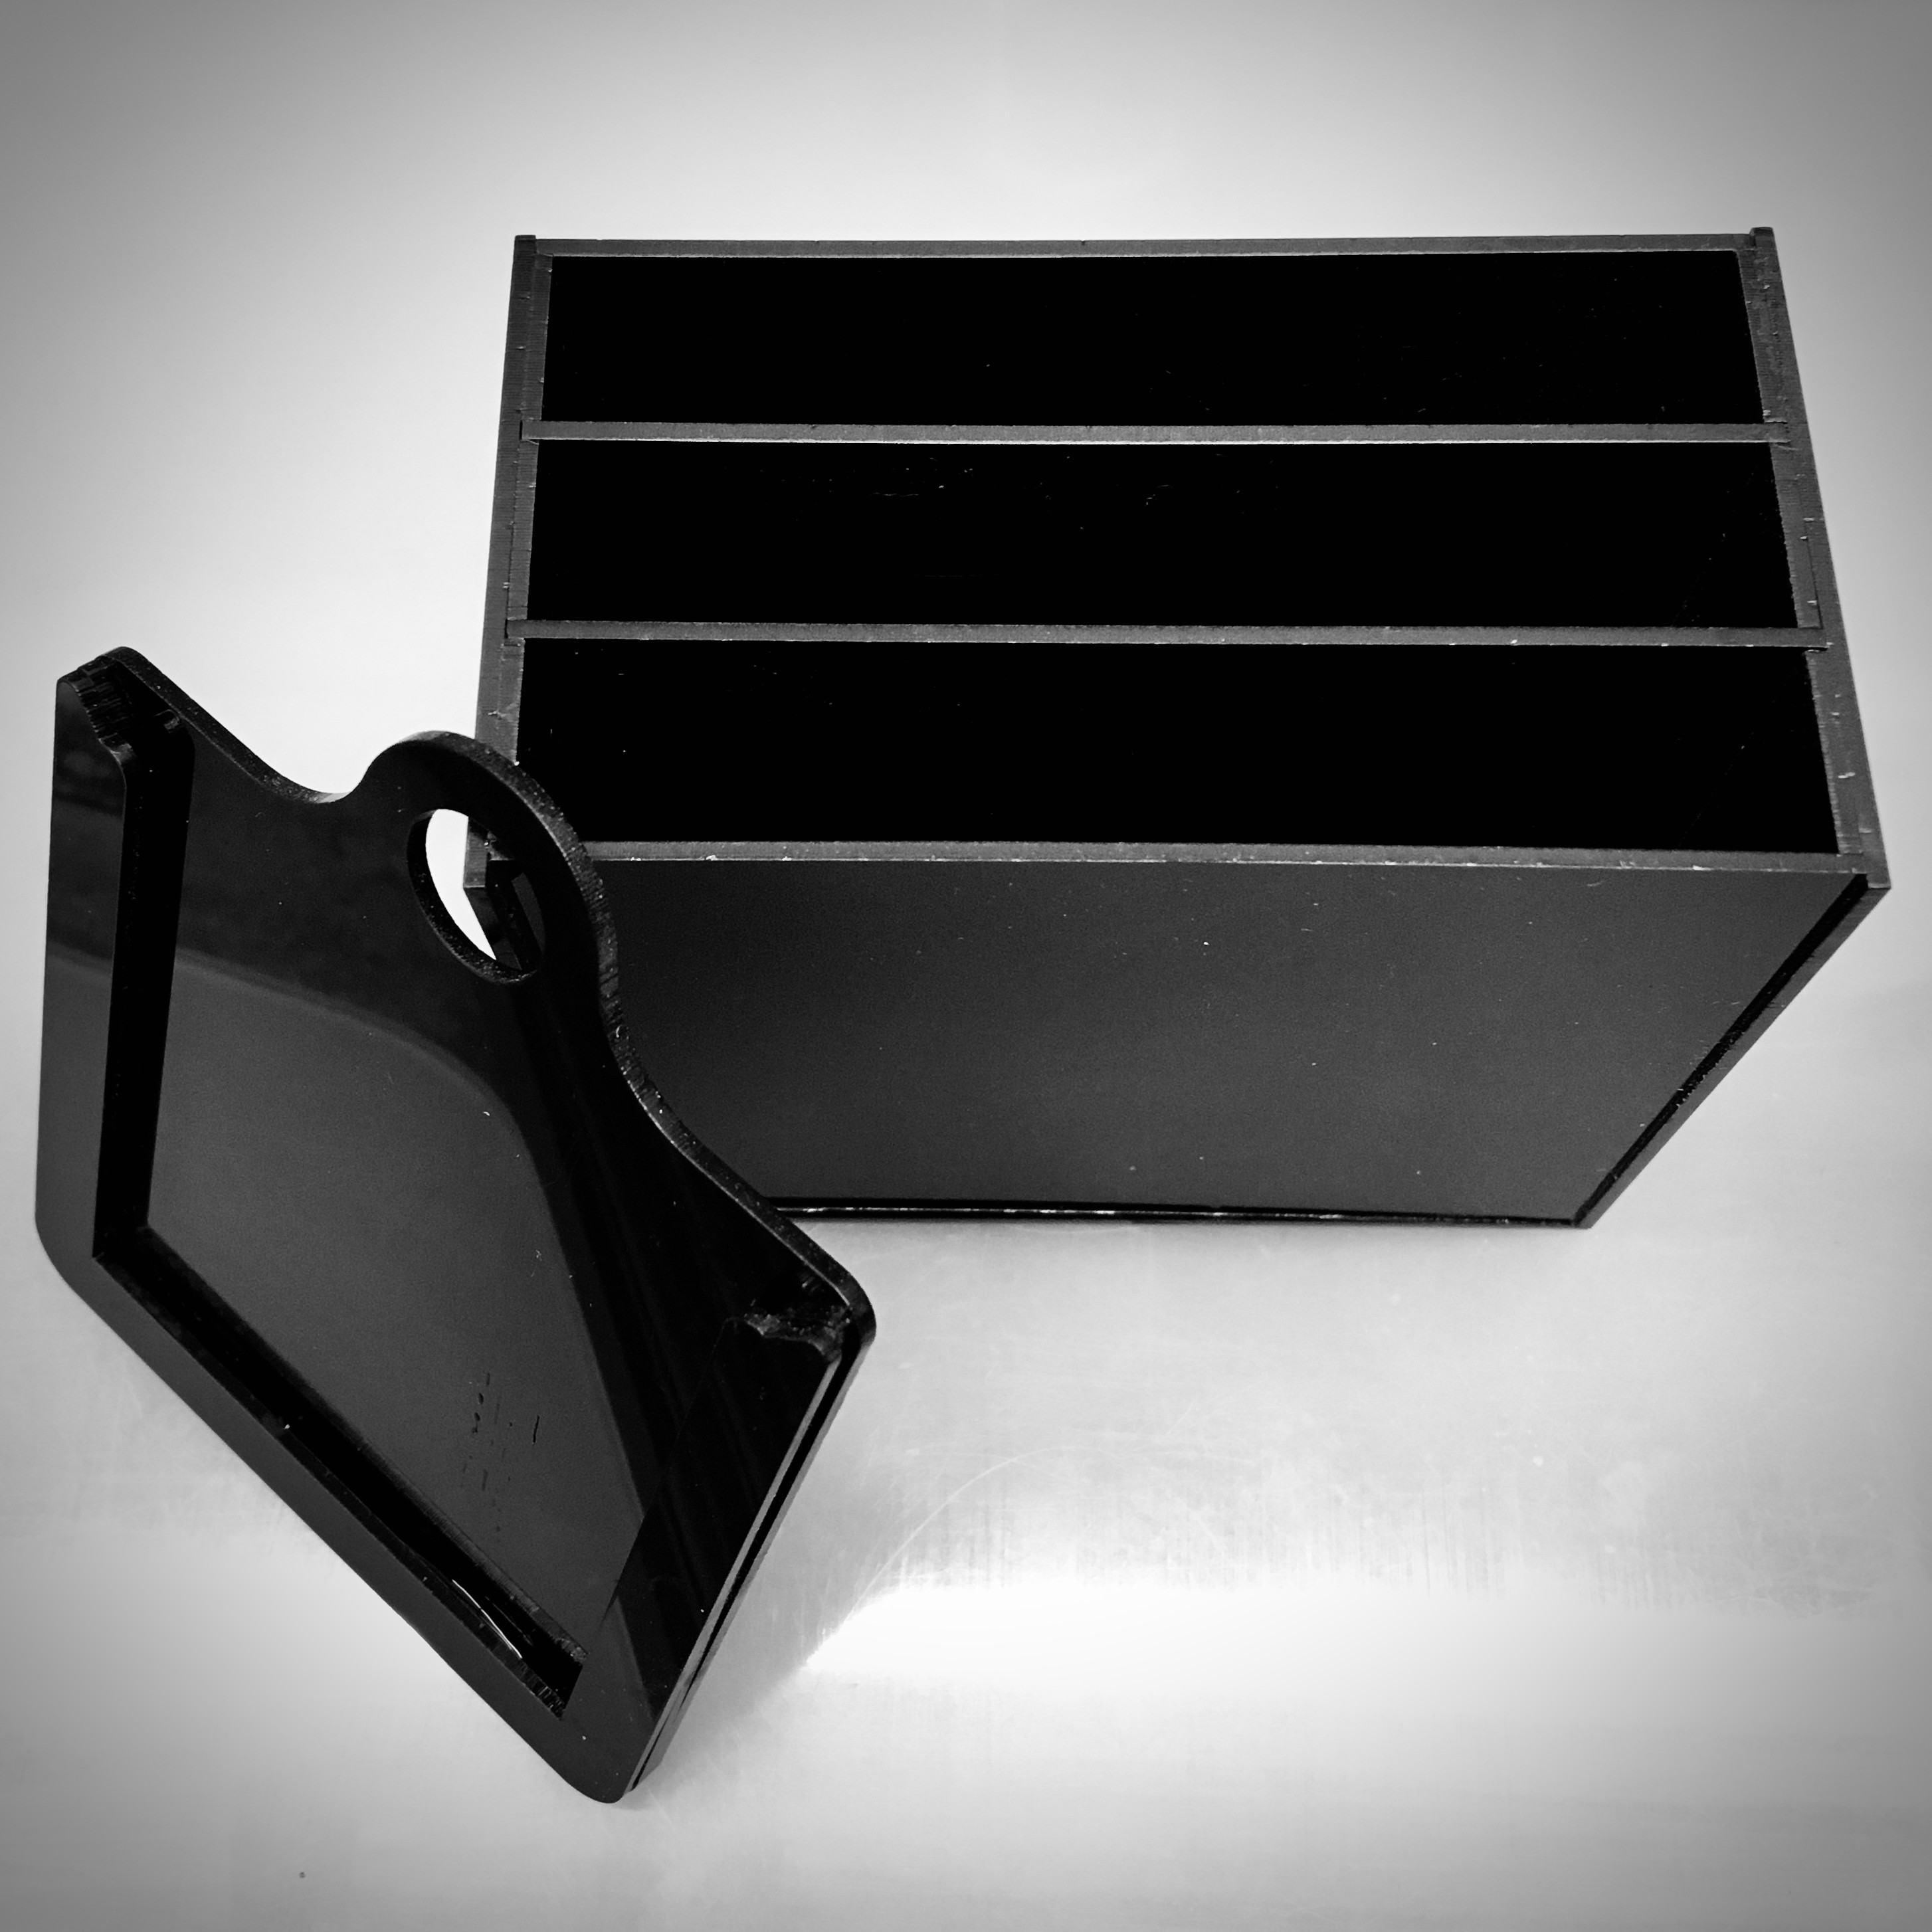 3-Compartment Slot Tank for Paper Negatives